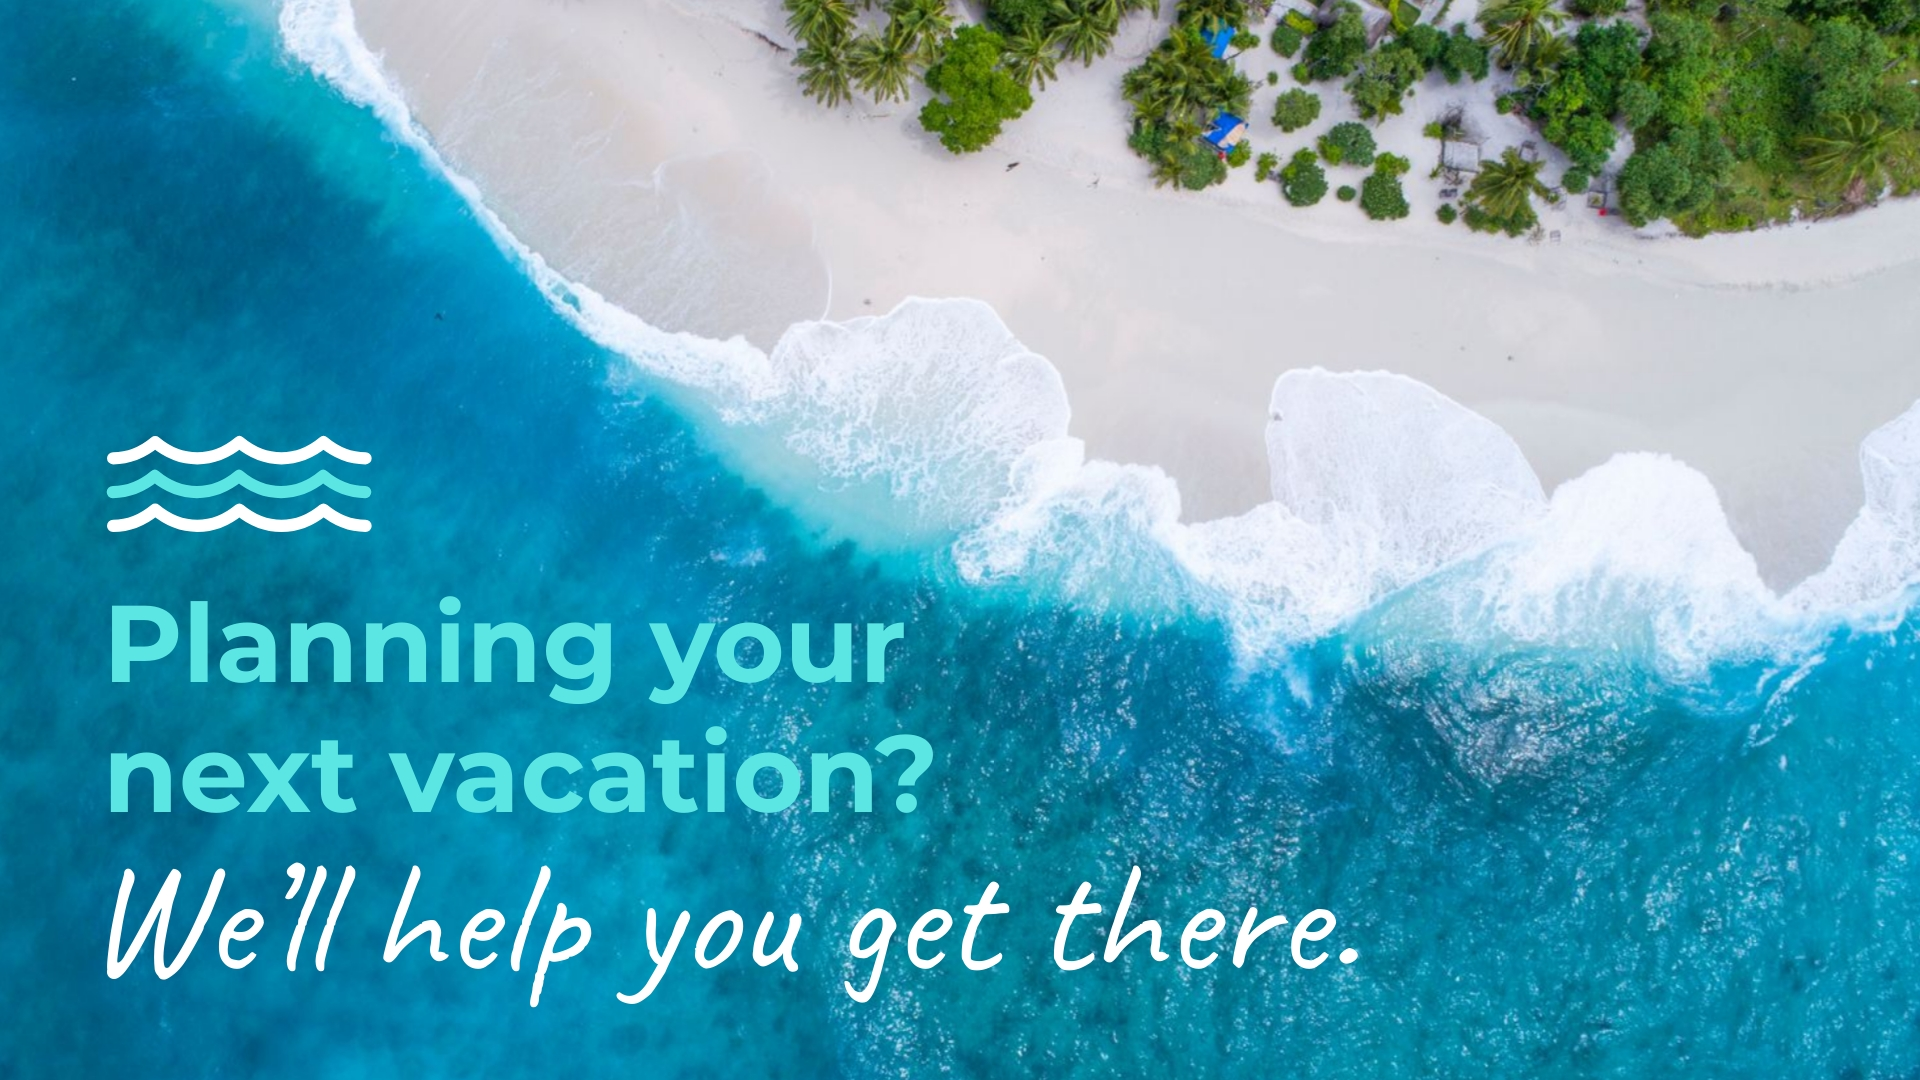 Travel Agency Facebook Video Ad Template